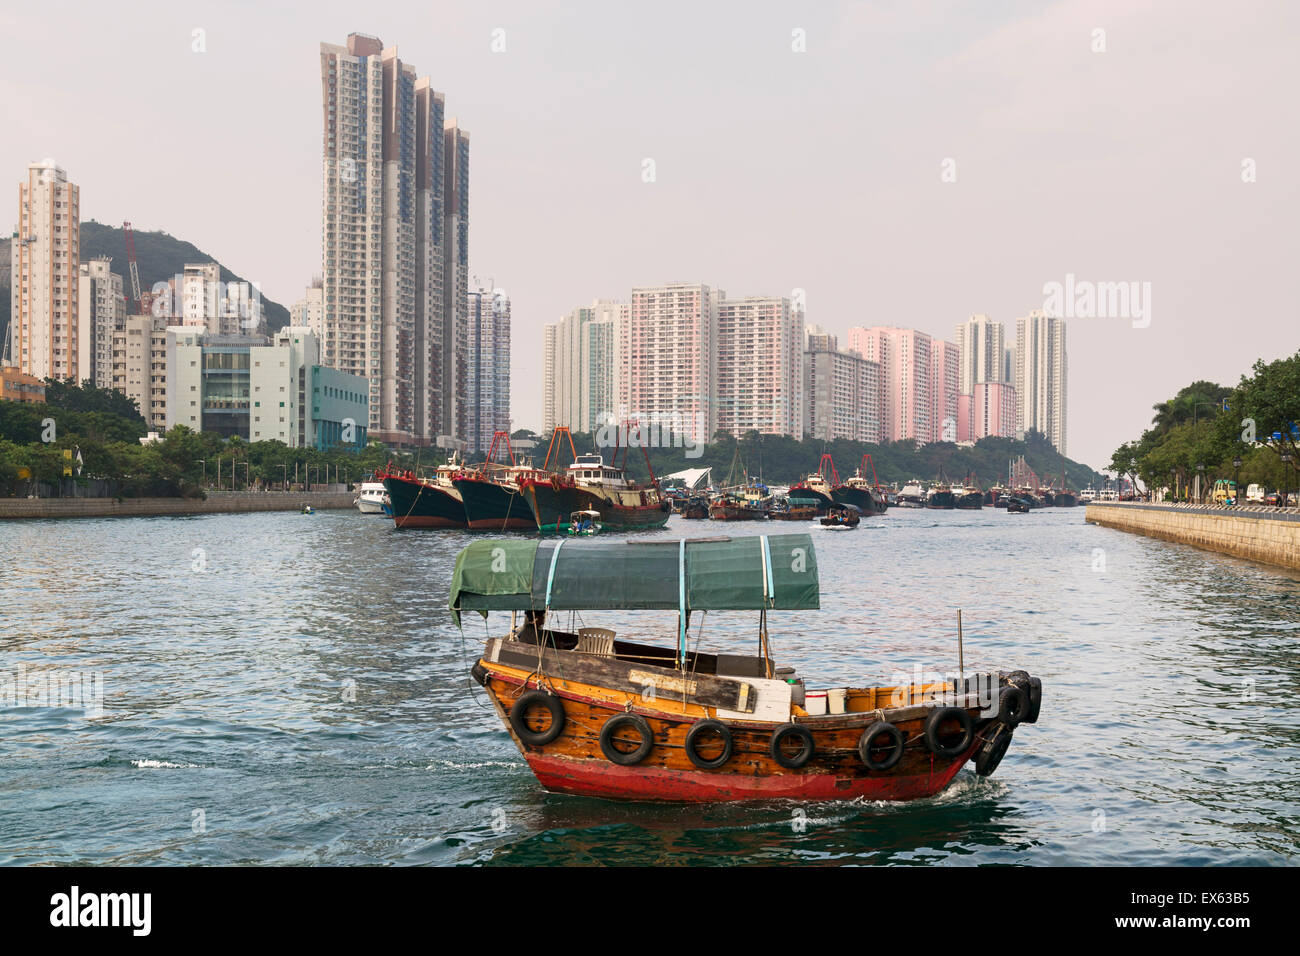 Aberdeen Harbour, Hong Kong with a passing sampan boat. - Stock Image